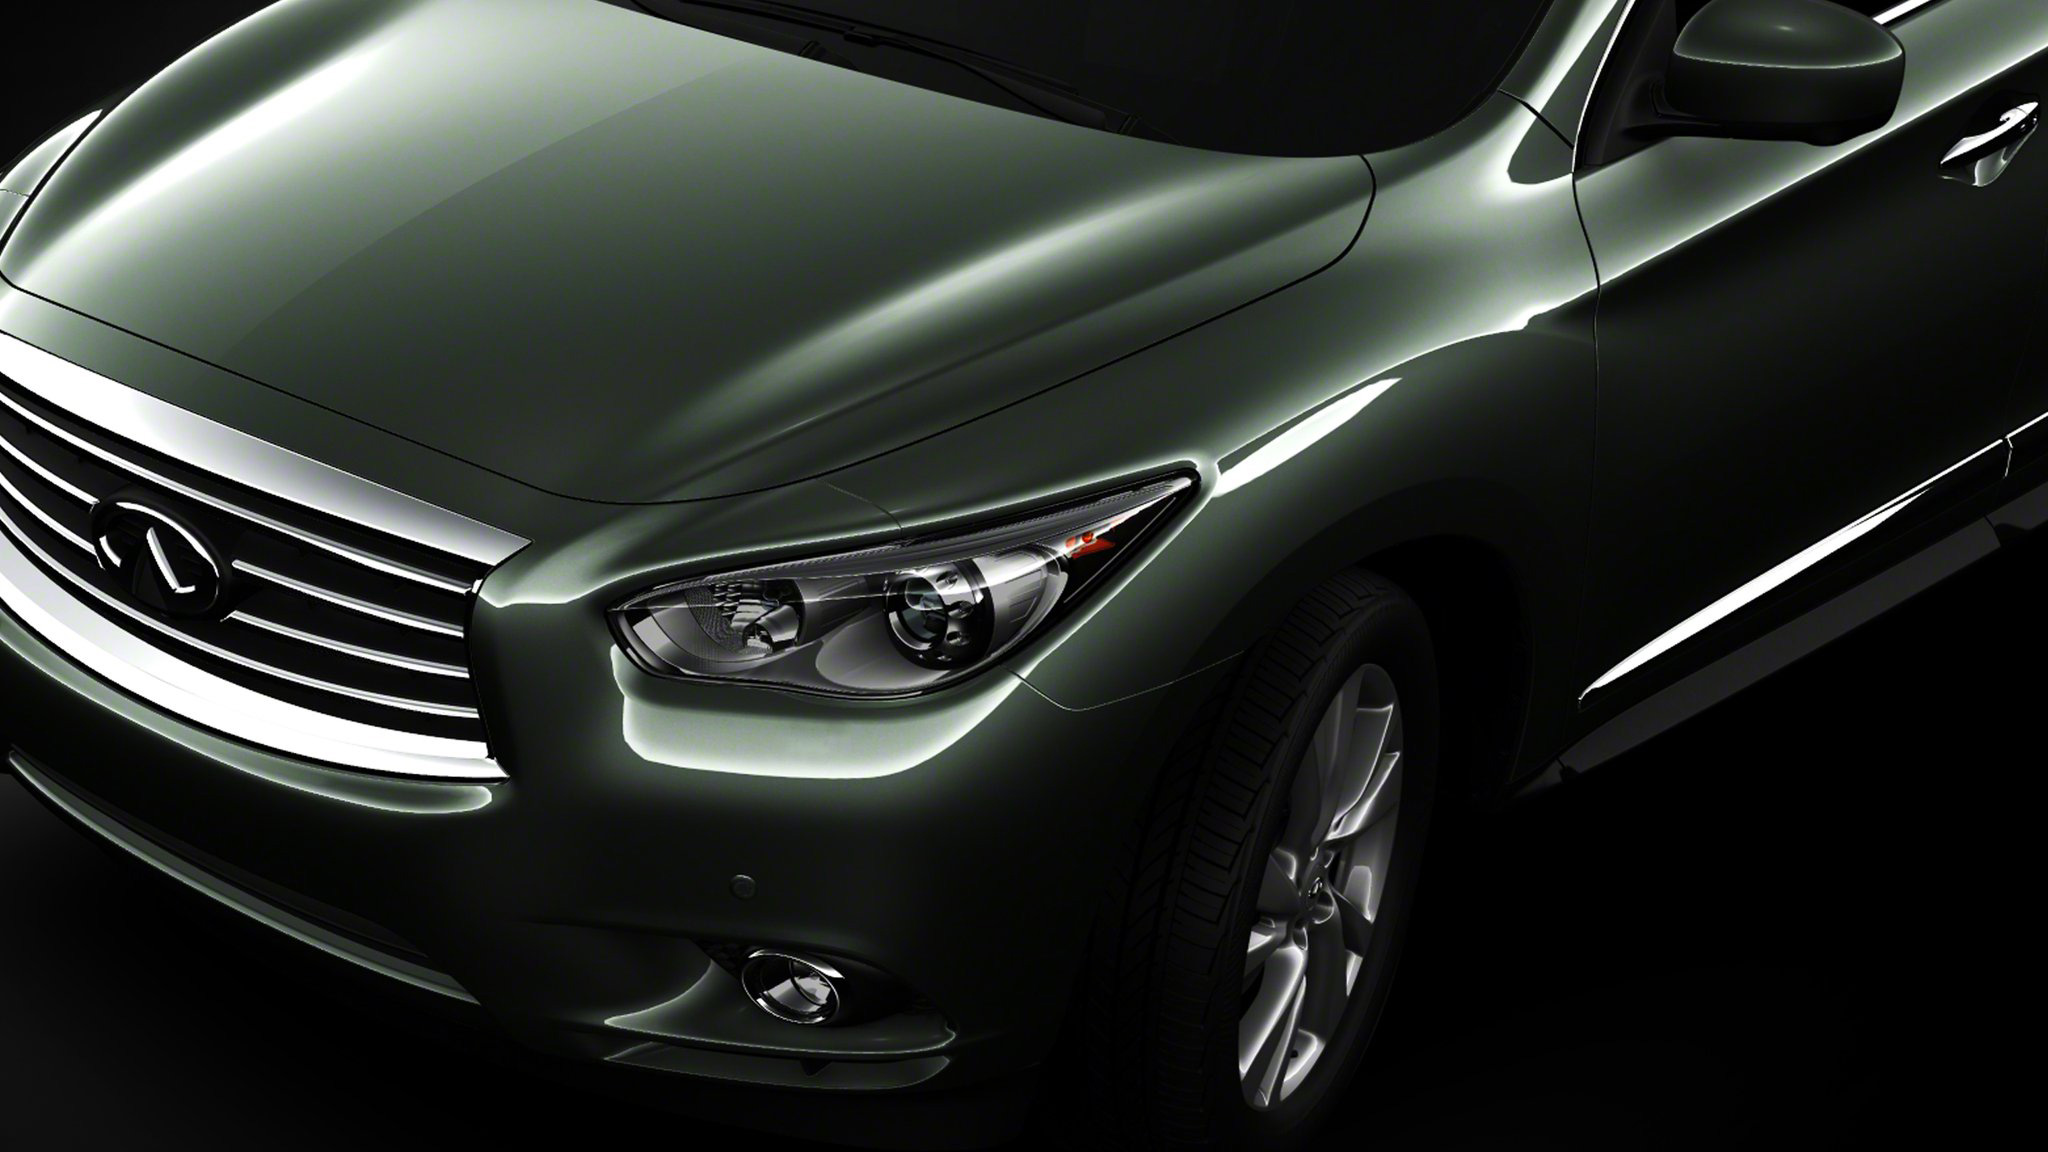 Infiniti Rolls Out 4th Teaser Image of new JX Crossover Concept